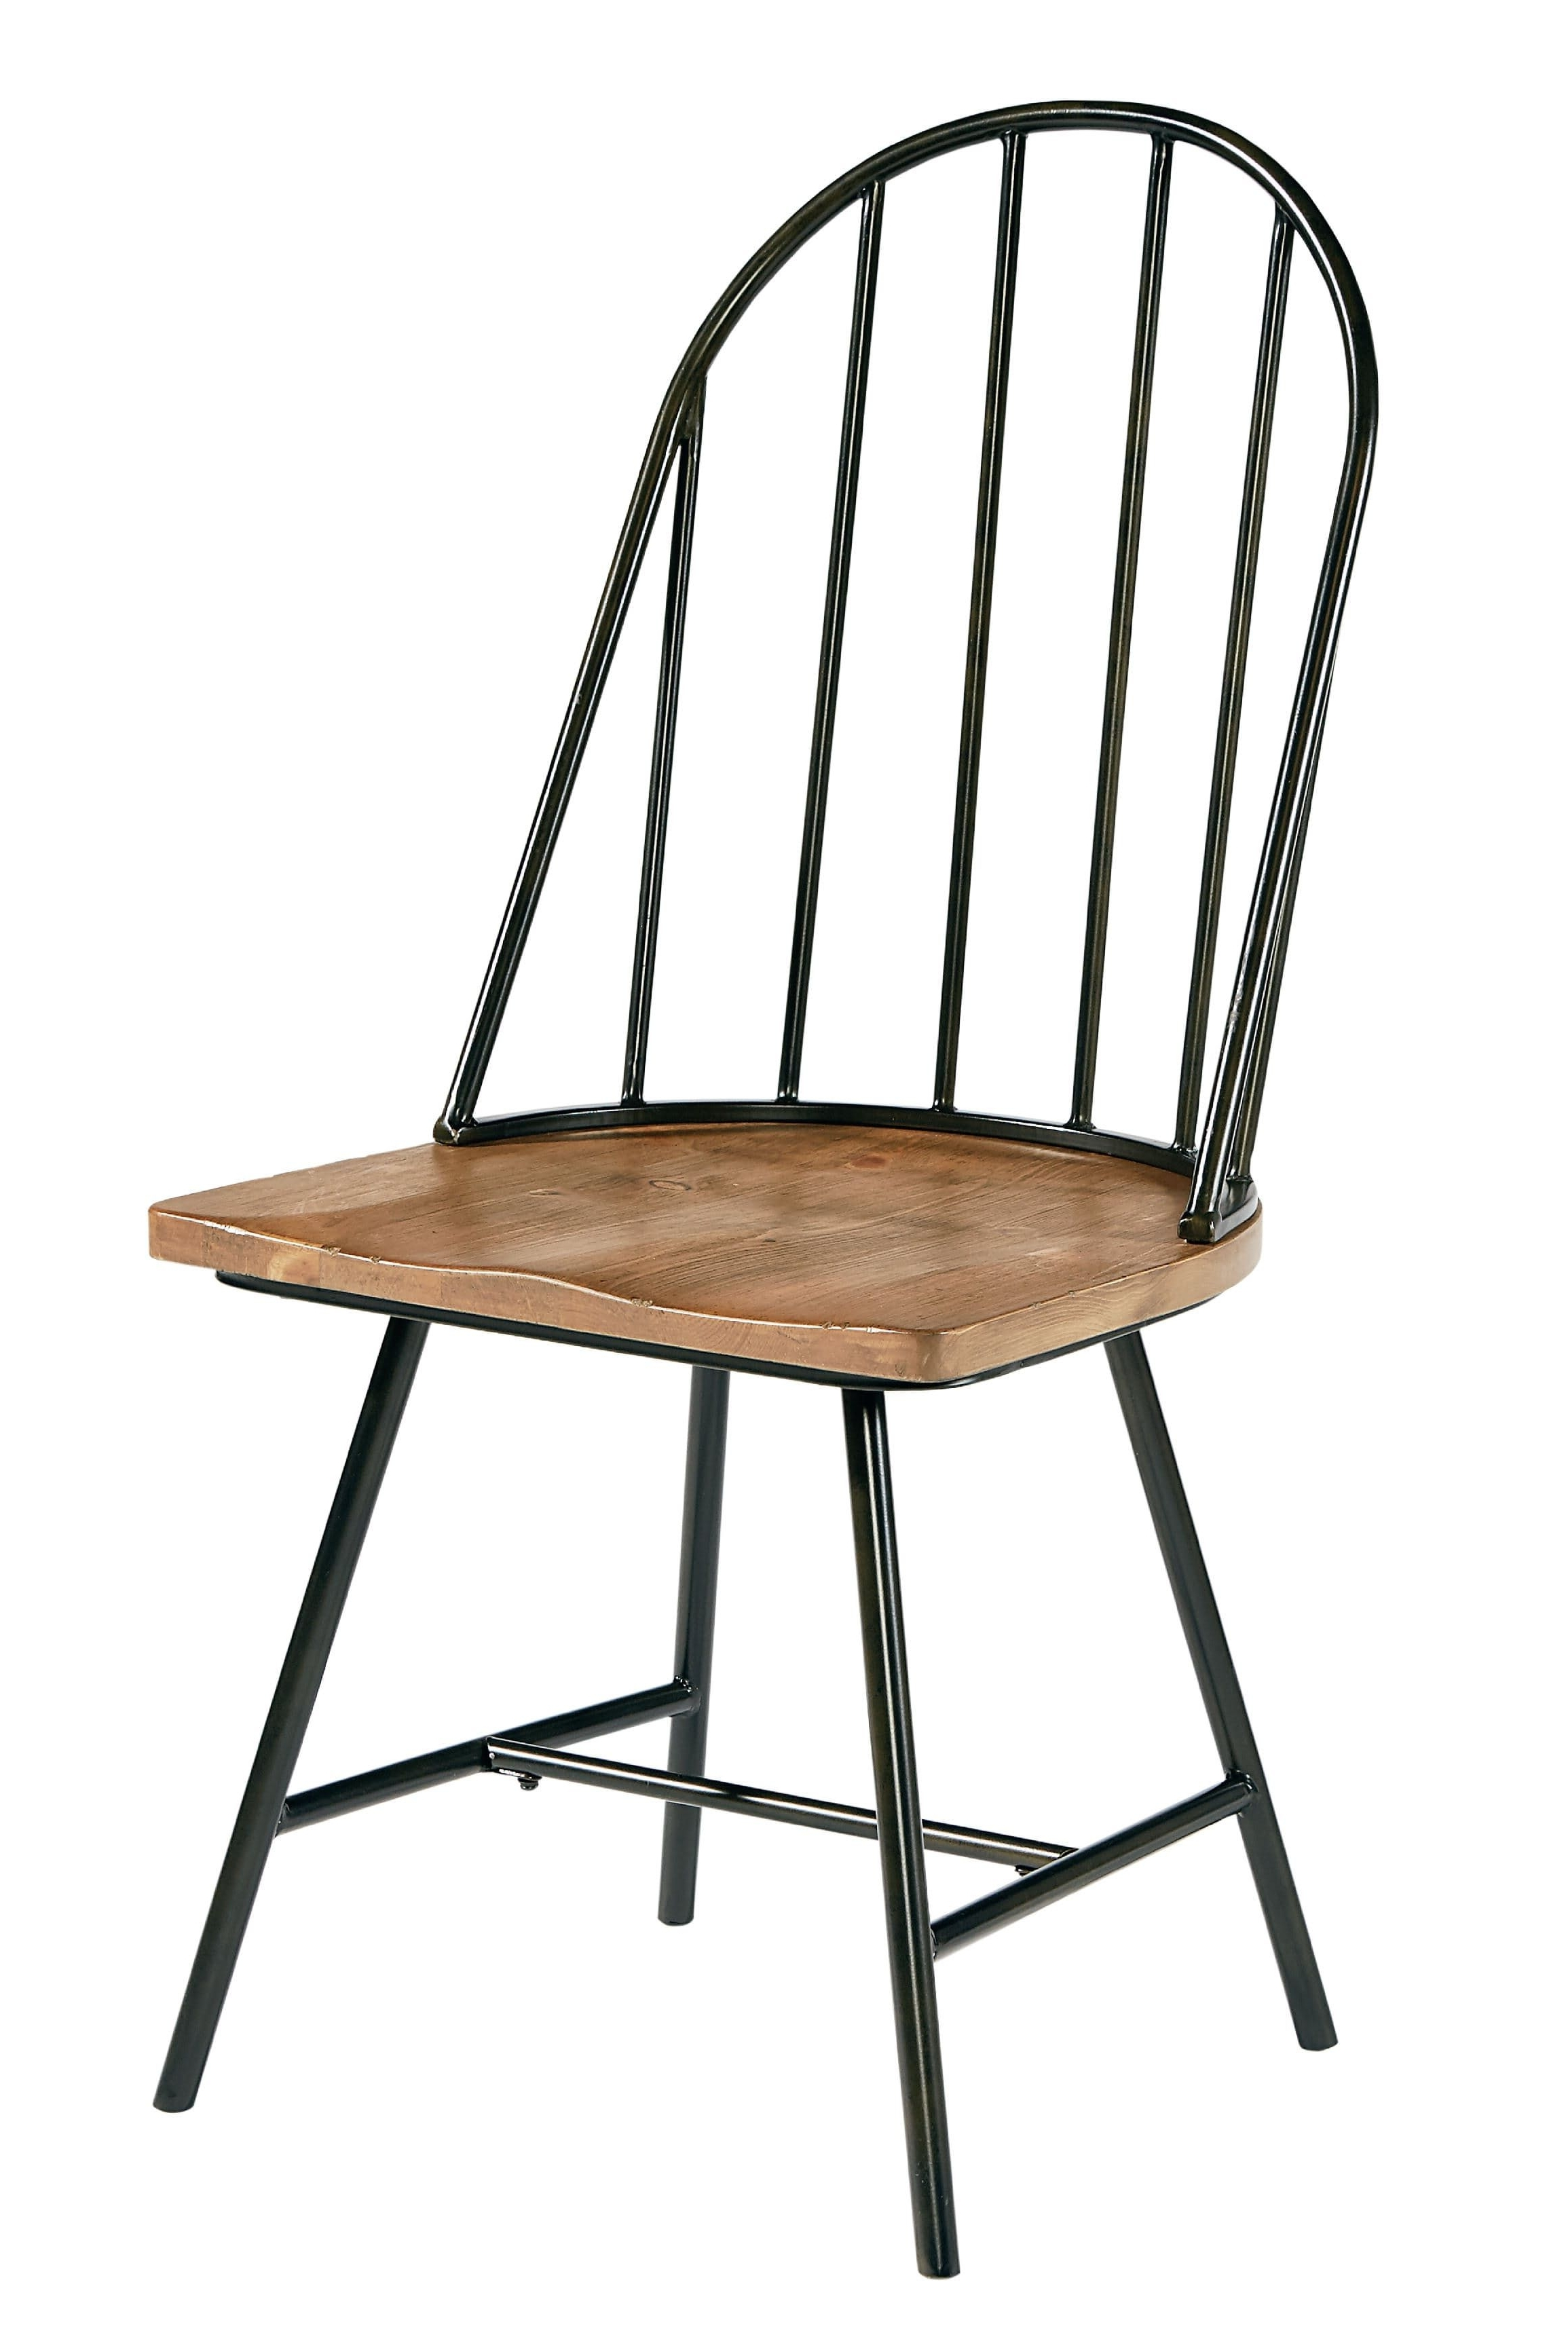 Famous Magnolia Home Kempton Bench Side Chairs Pertaining To Magnolia Home – Windsor Metal And Wood Hoop Chair St: (View 8 of 20)